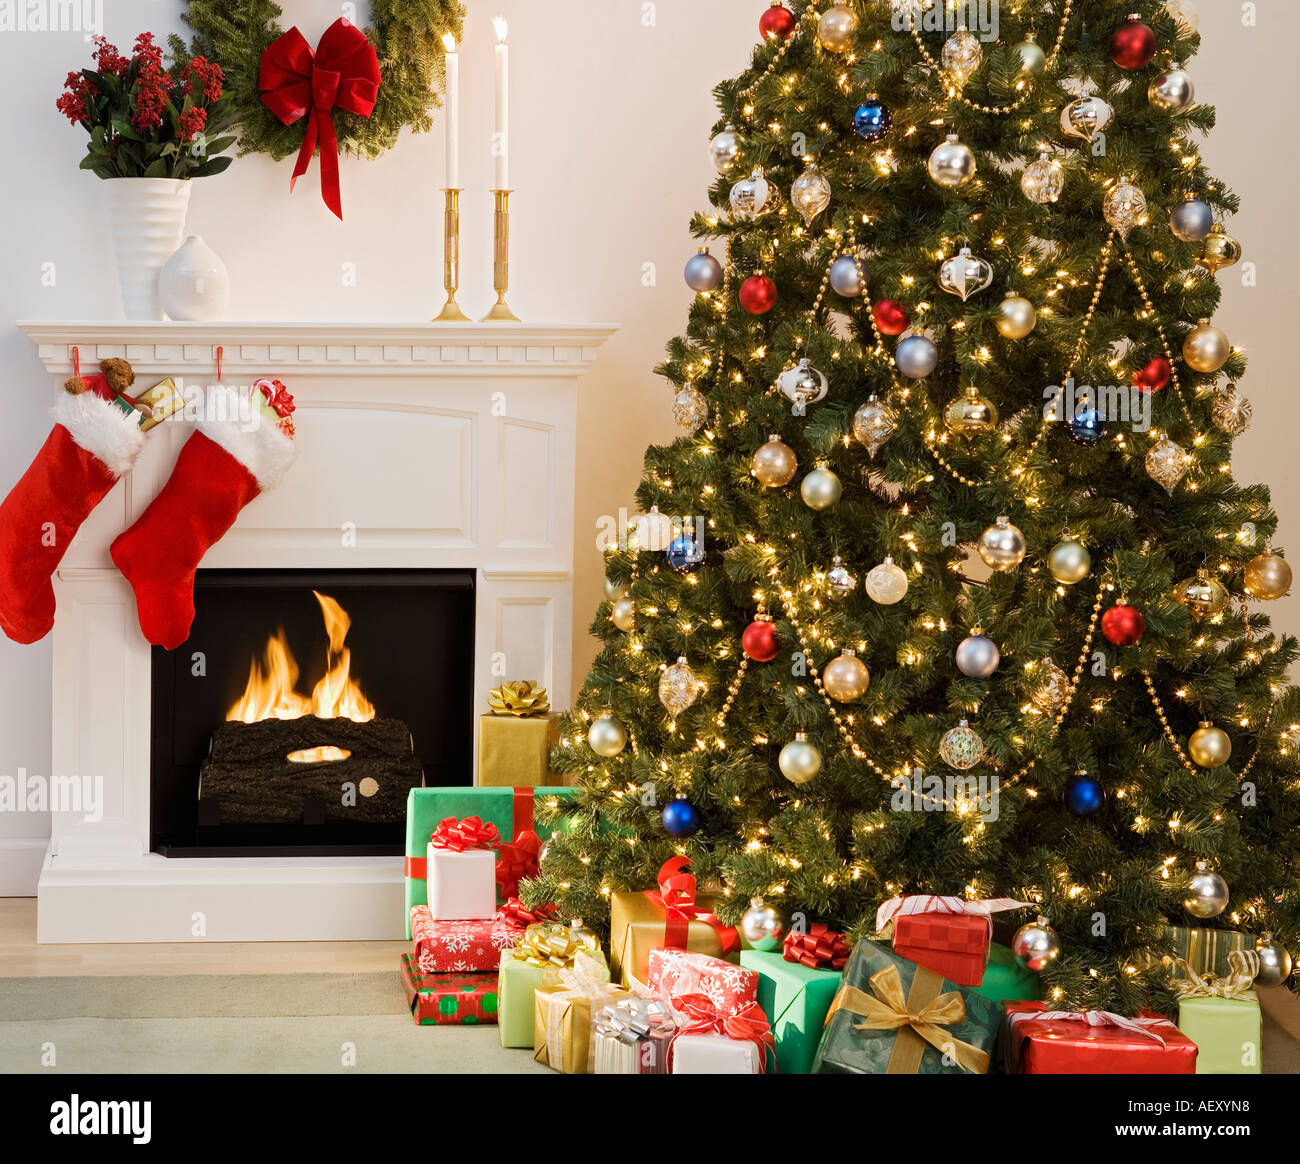 Christmas Tree With Presents And Fireplace With Stockings Stock